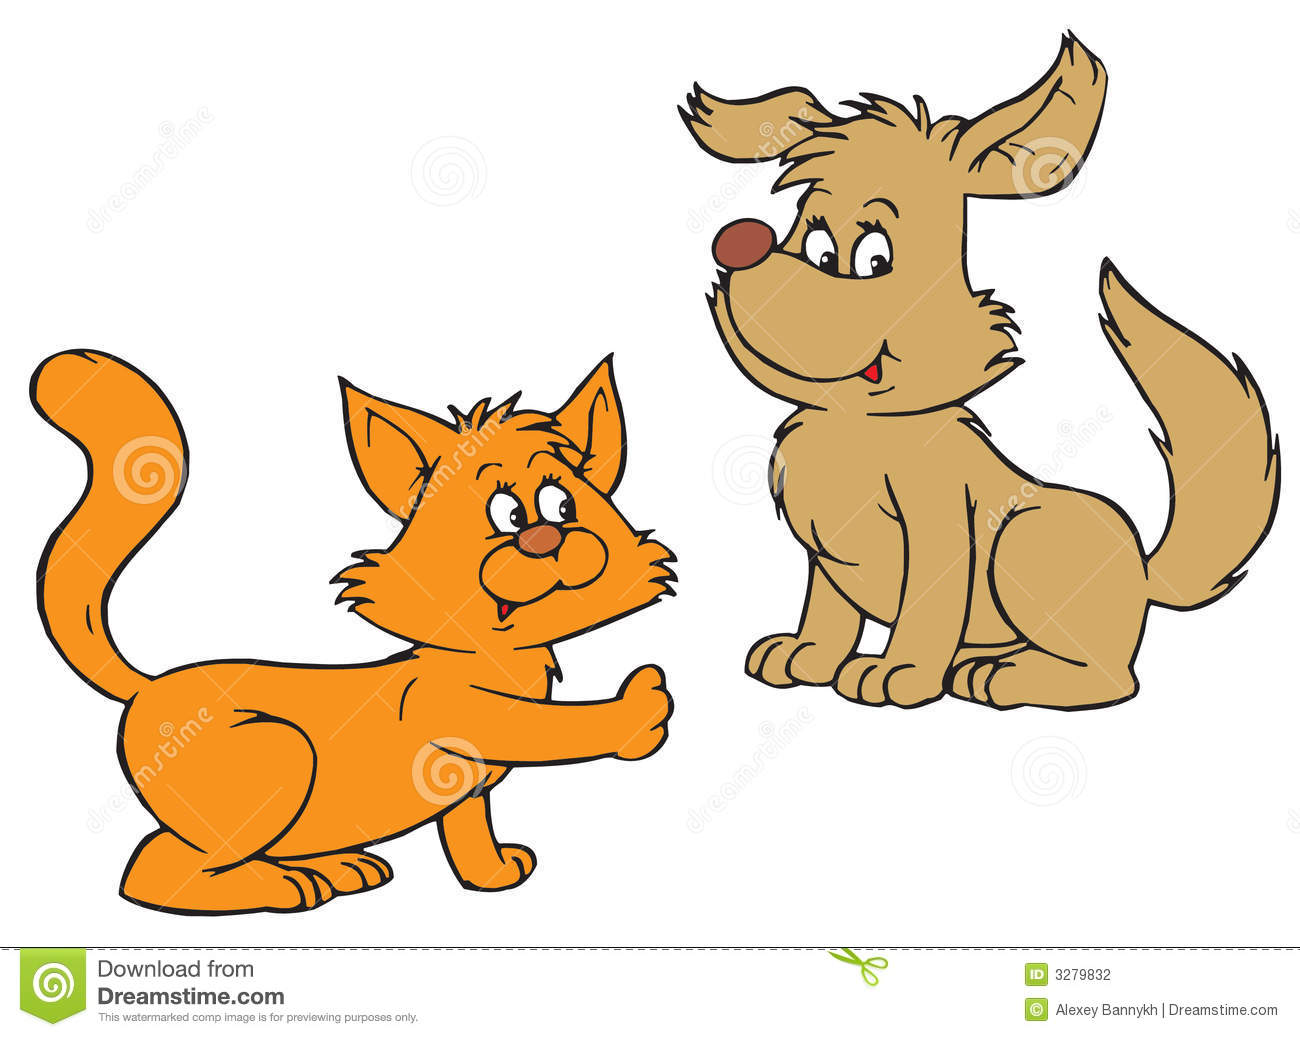 Clipart Dogs And Cats Images & Pictures - Becuo